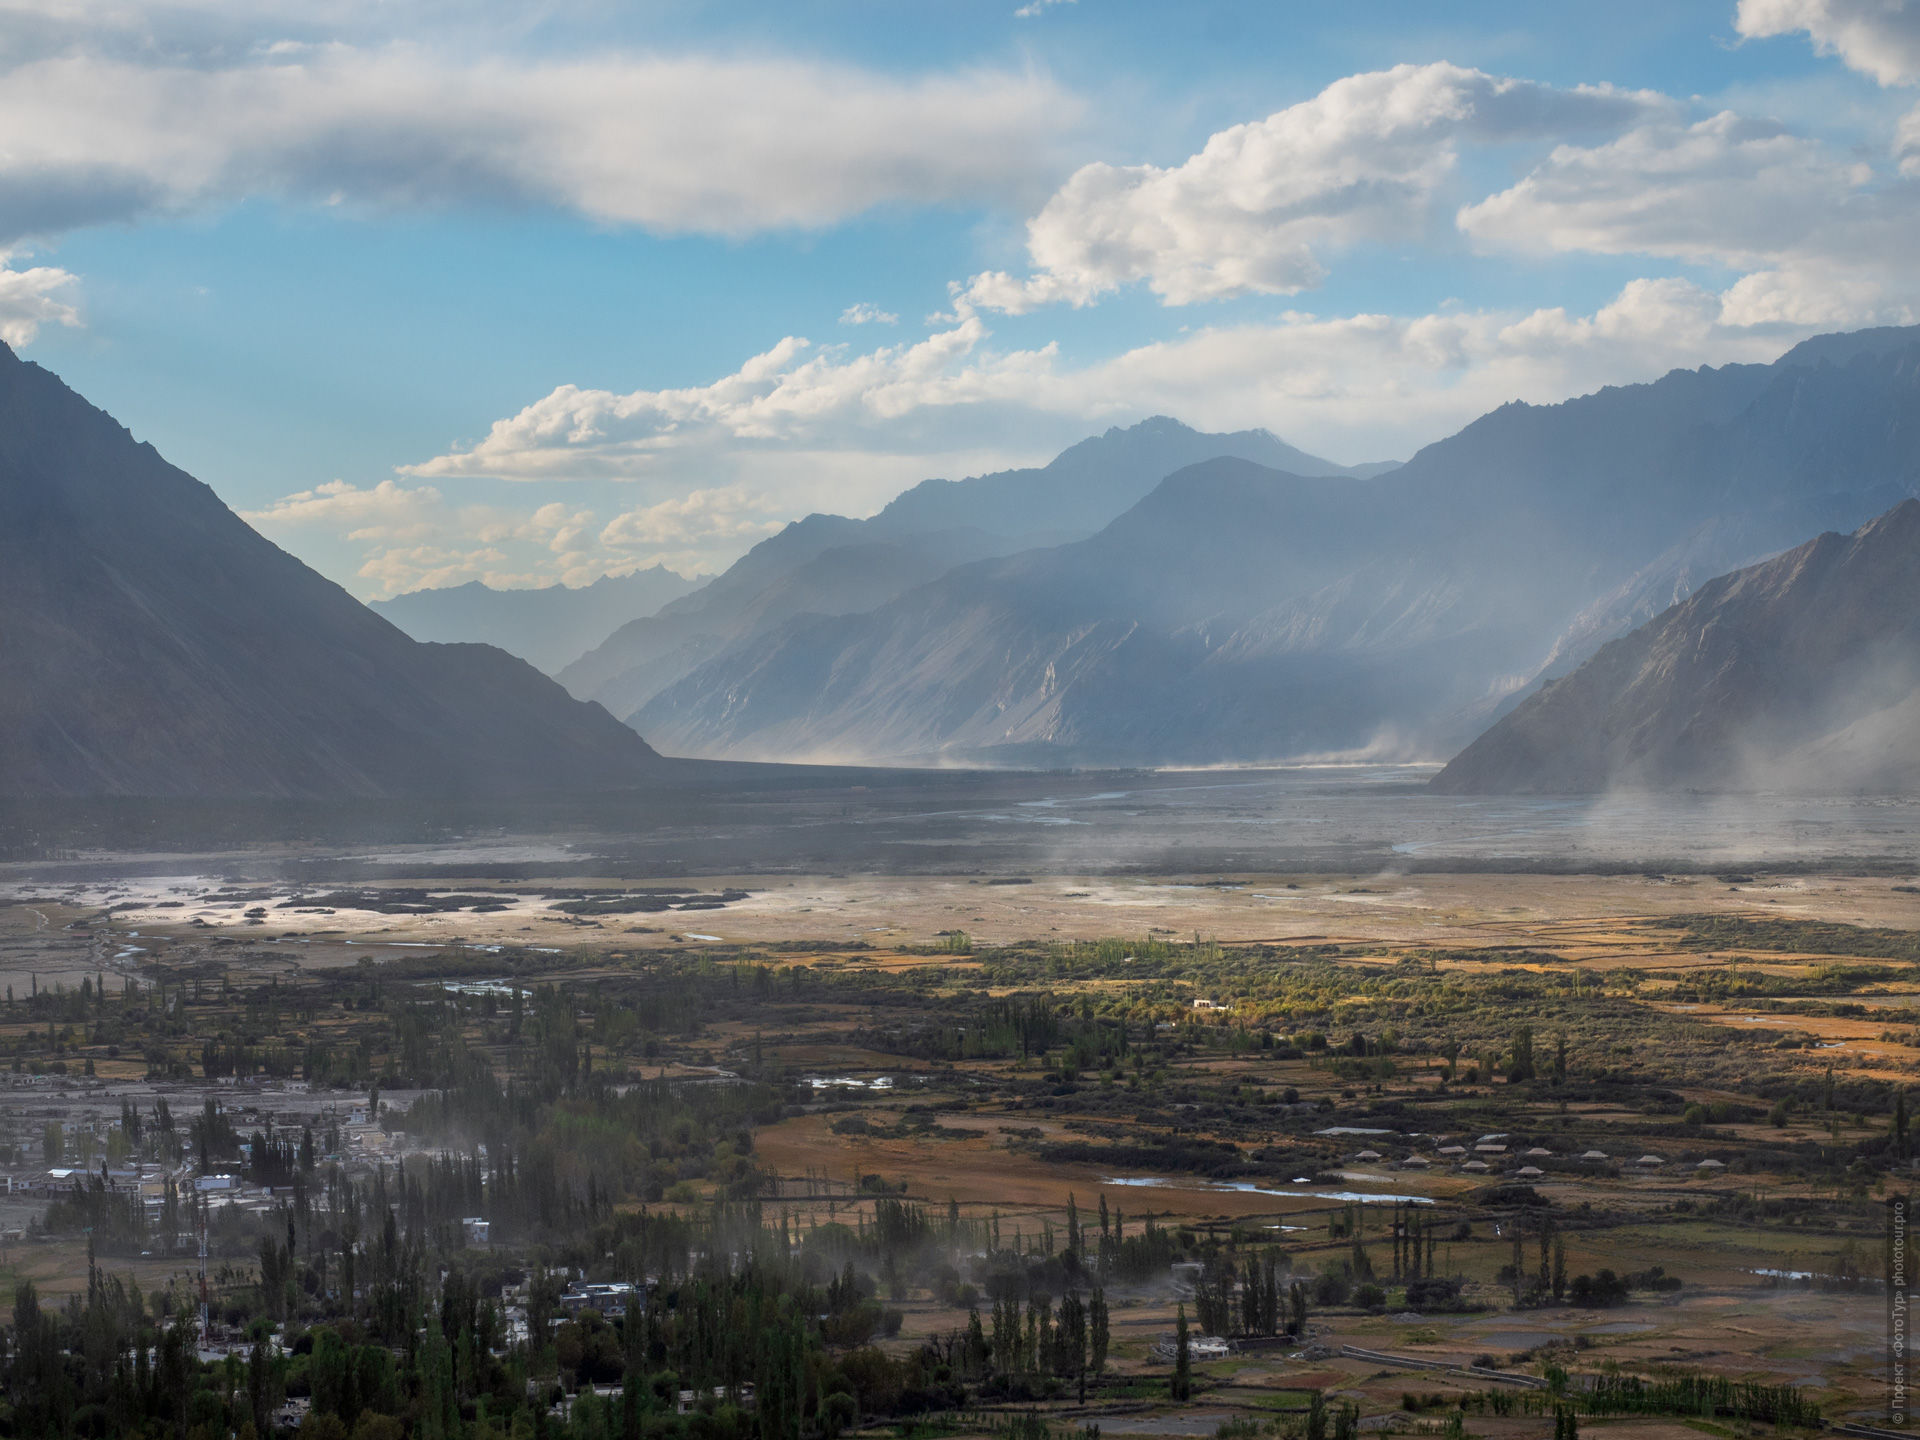 Nubra Valley. Expedition Tibet Lake-2: Pangong, Tso Moriri, Tso Kar, Tso Startsapak, Leh-Manali highway.